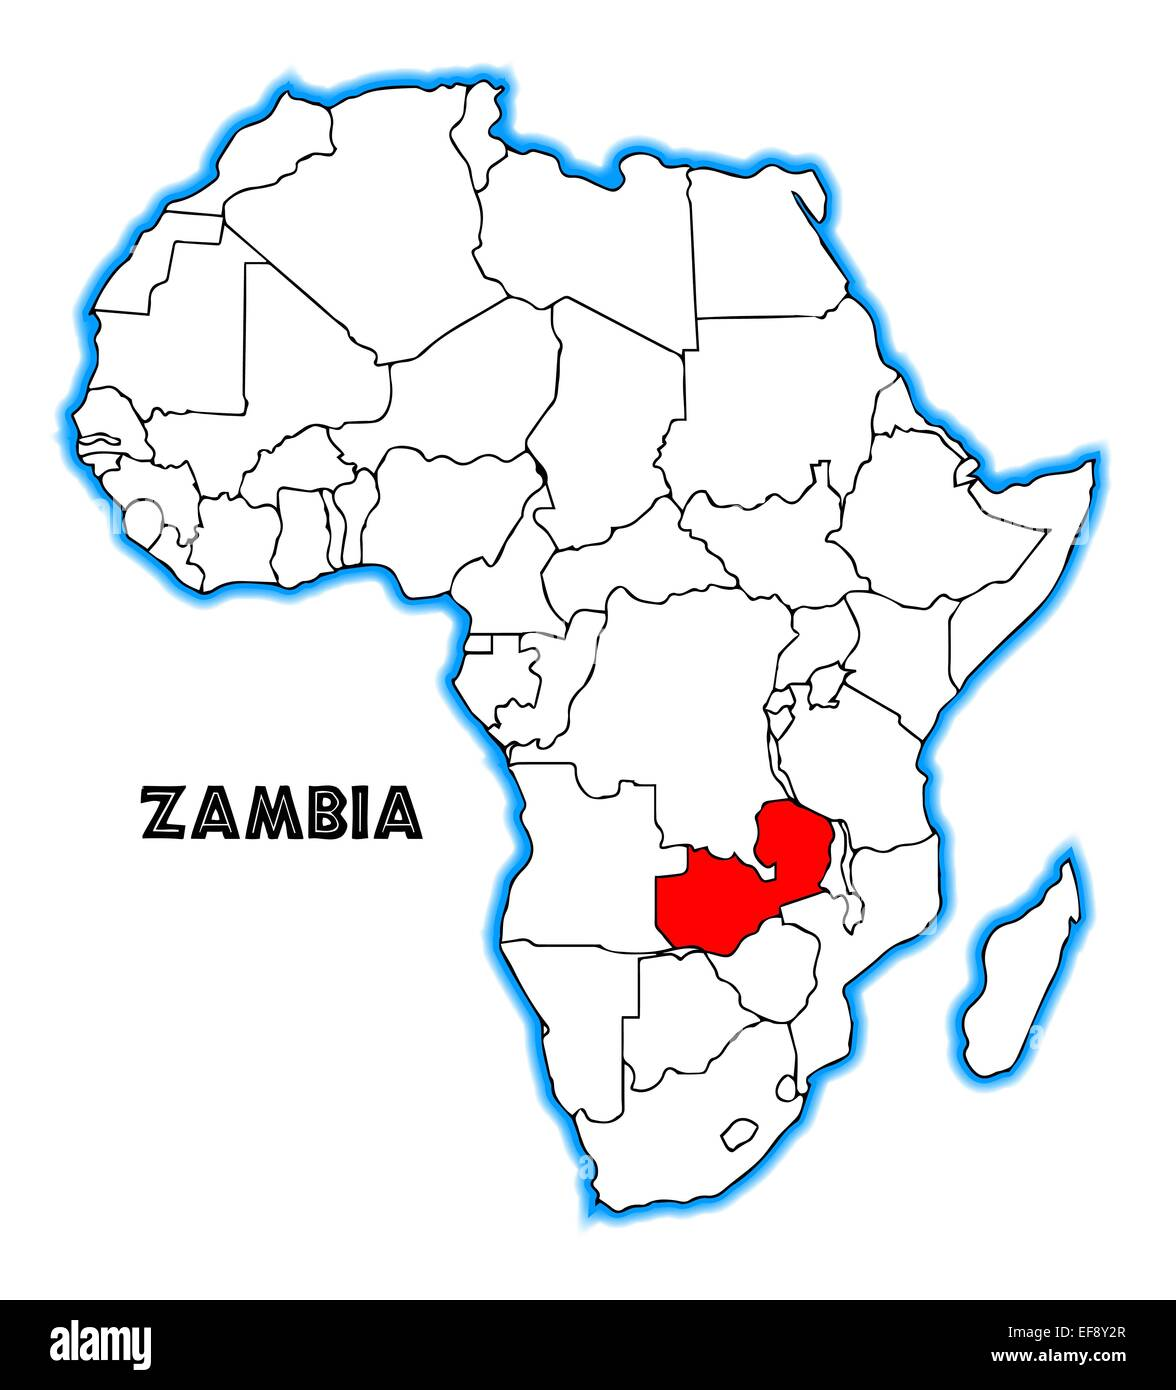 Map Of Africa Zambia.Zambia Outline Inset Into A Map Of Africa Over A White Background